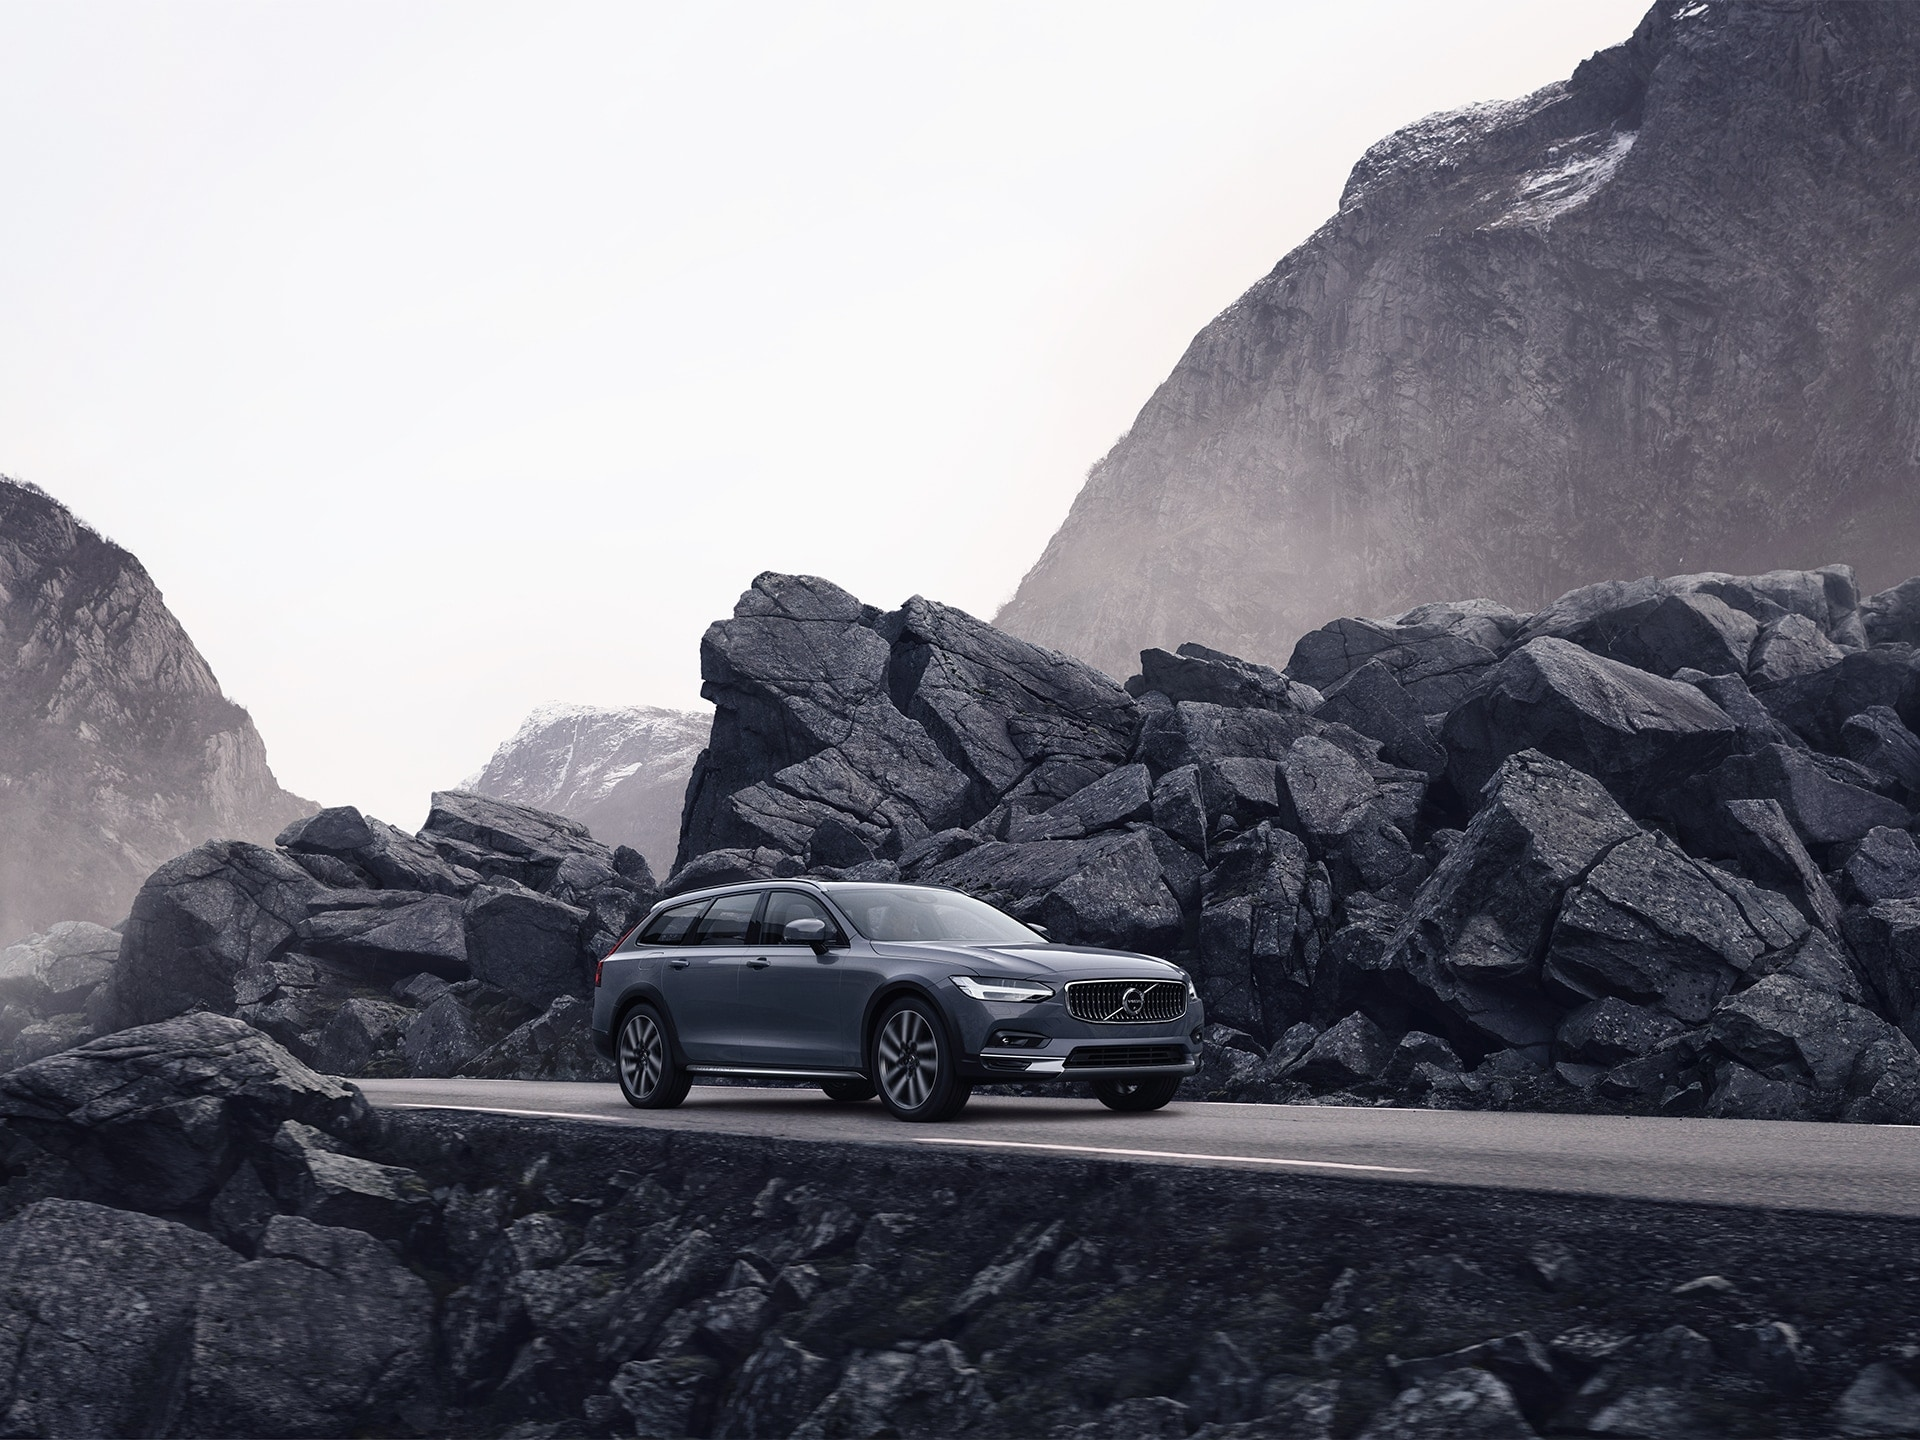 Grey Volvo driving on a road with rocks on the side of the road